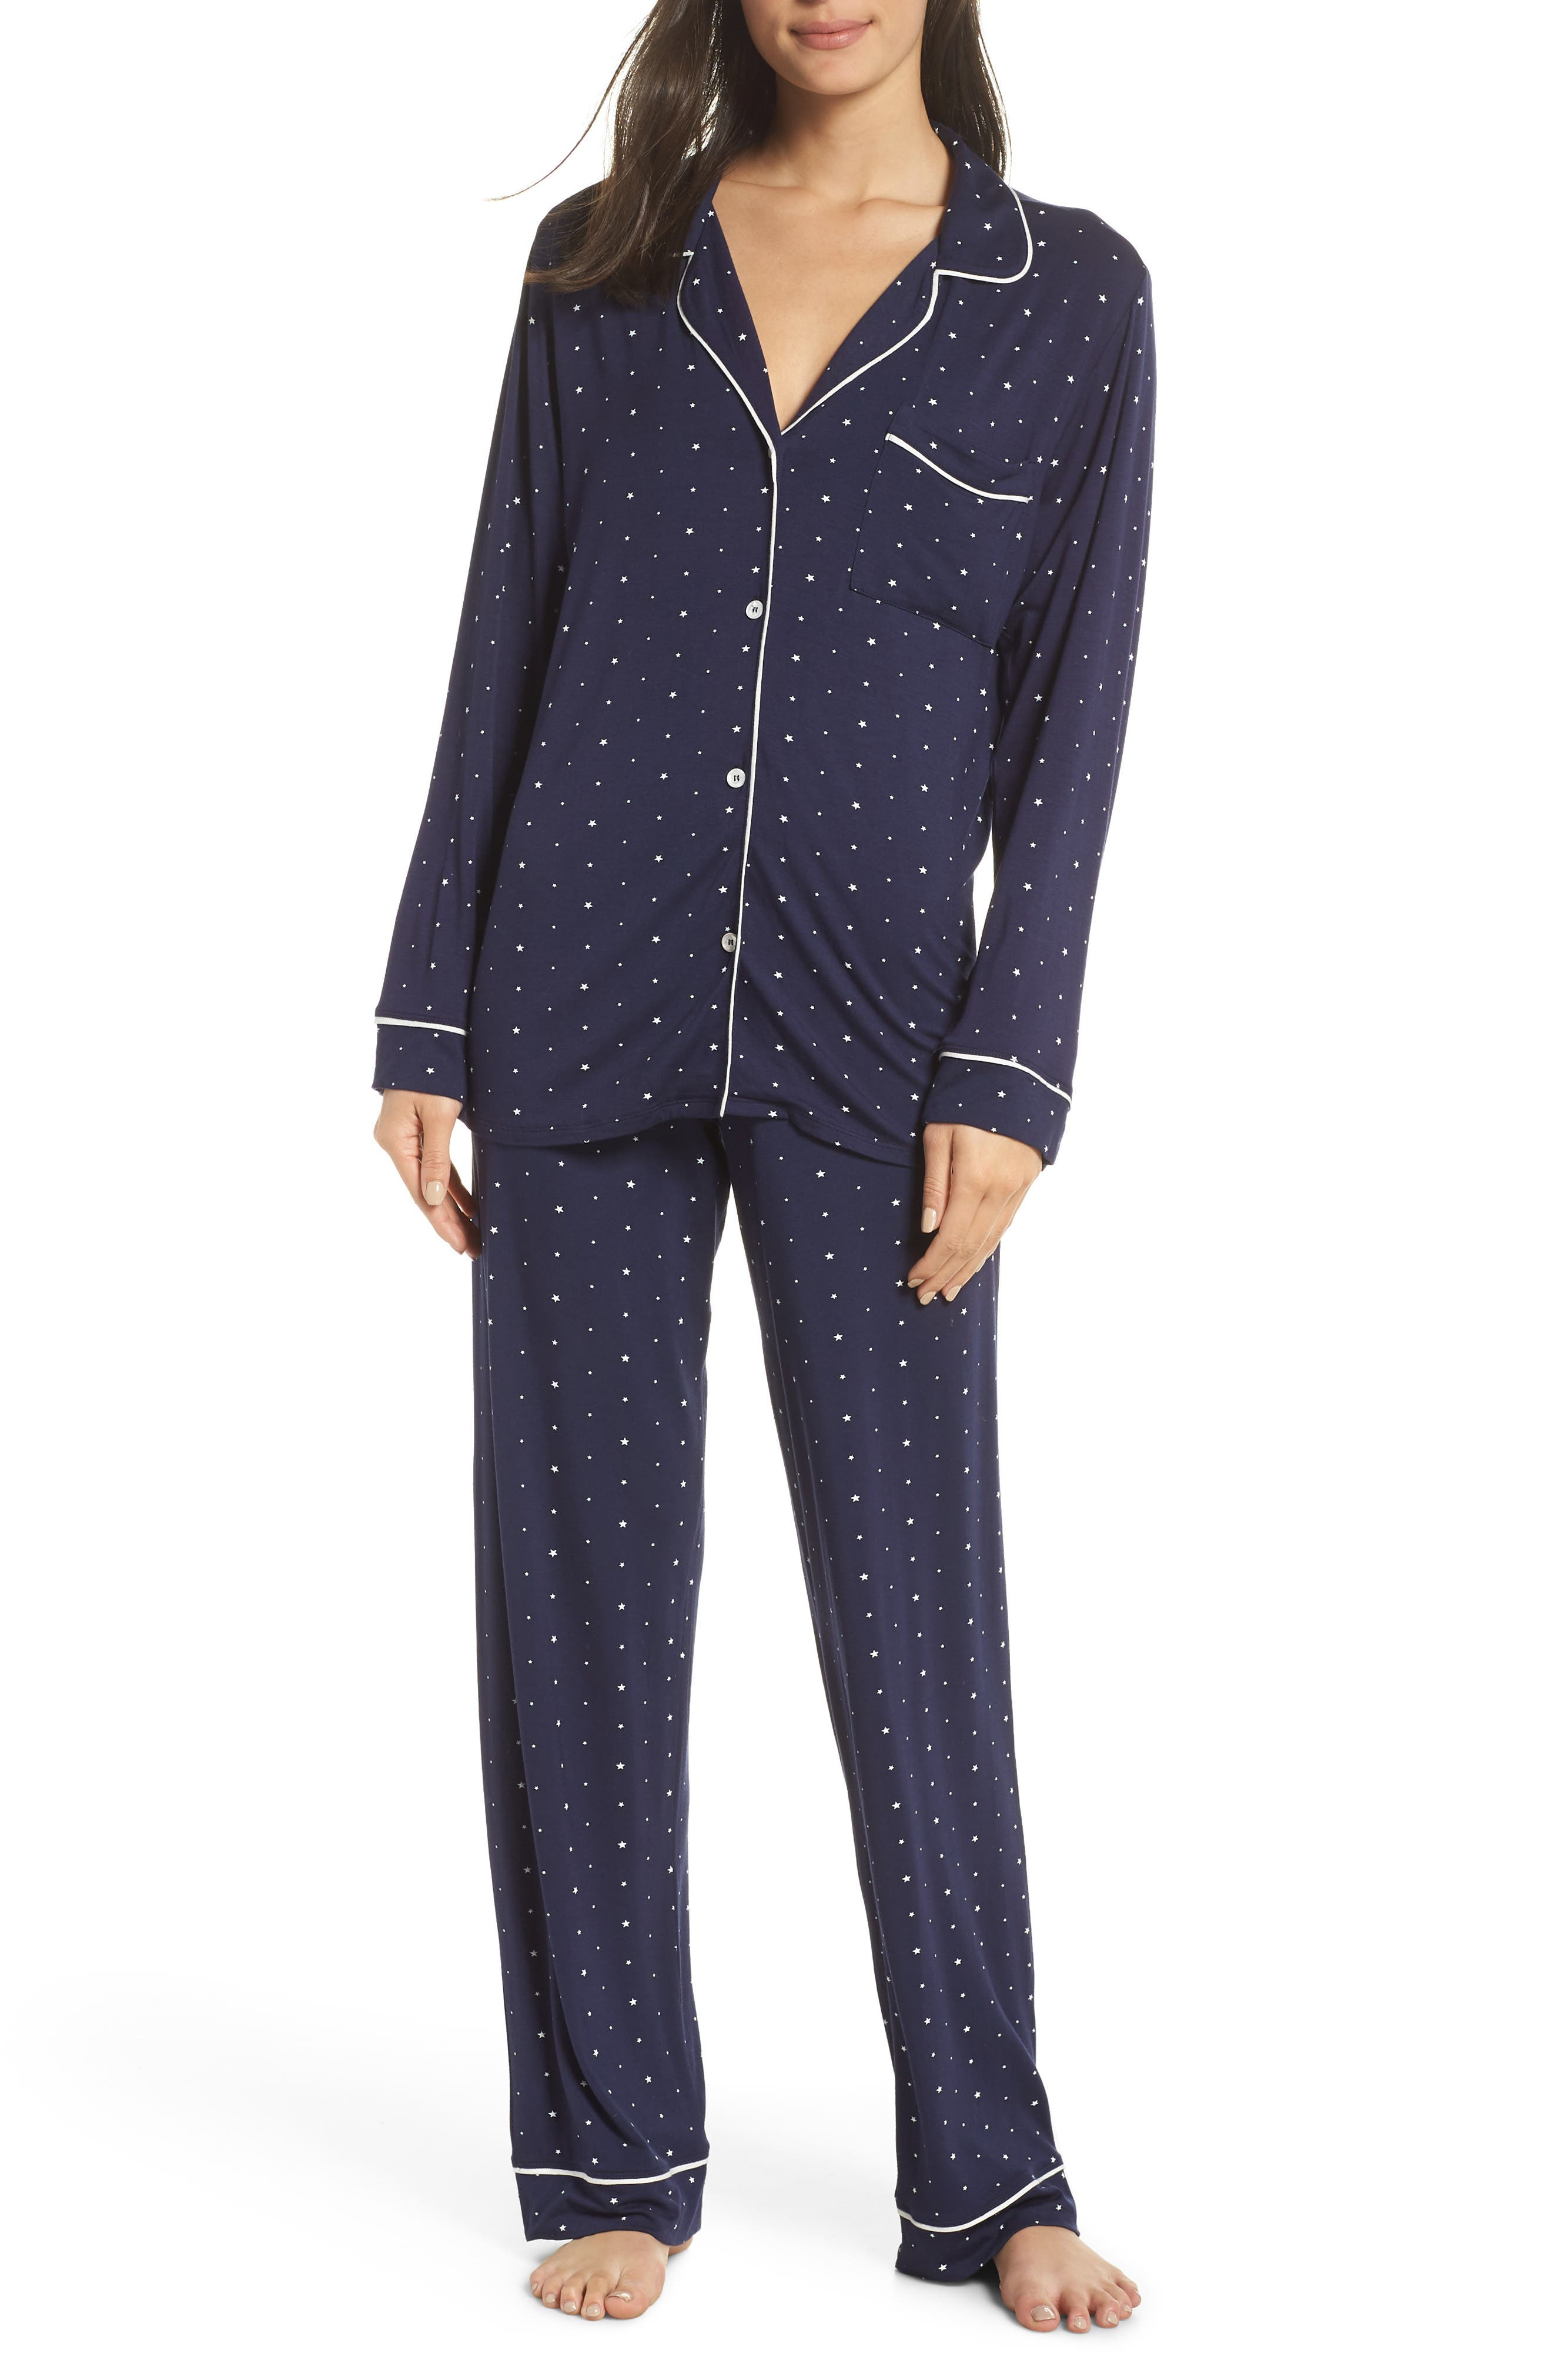 Sleep Chic Pajamas,                             Main thumbnail 1, color,                             NORTHER STARS/ IVORY